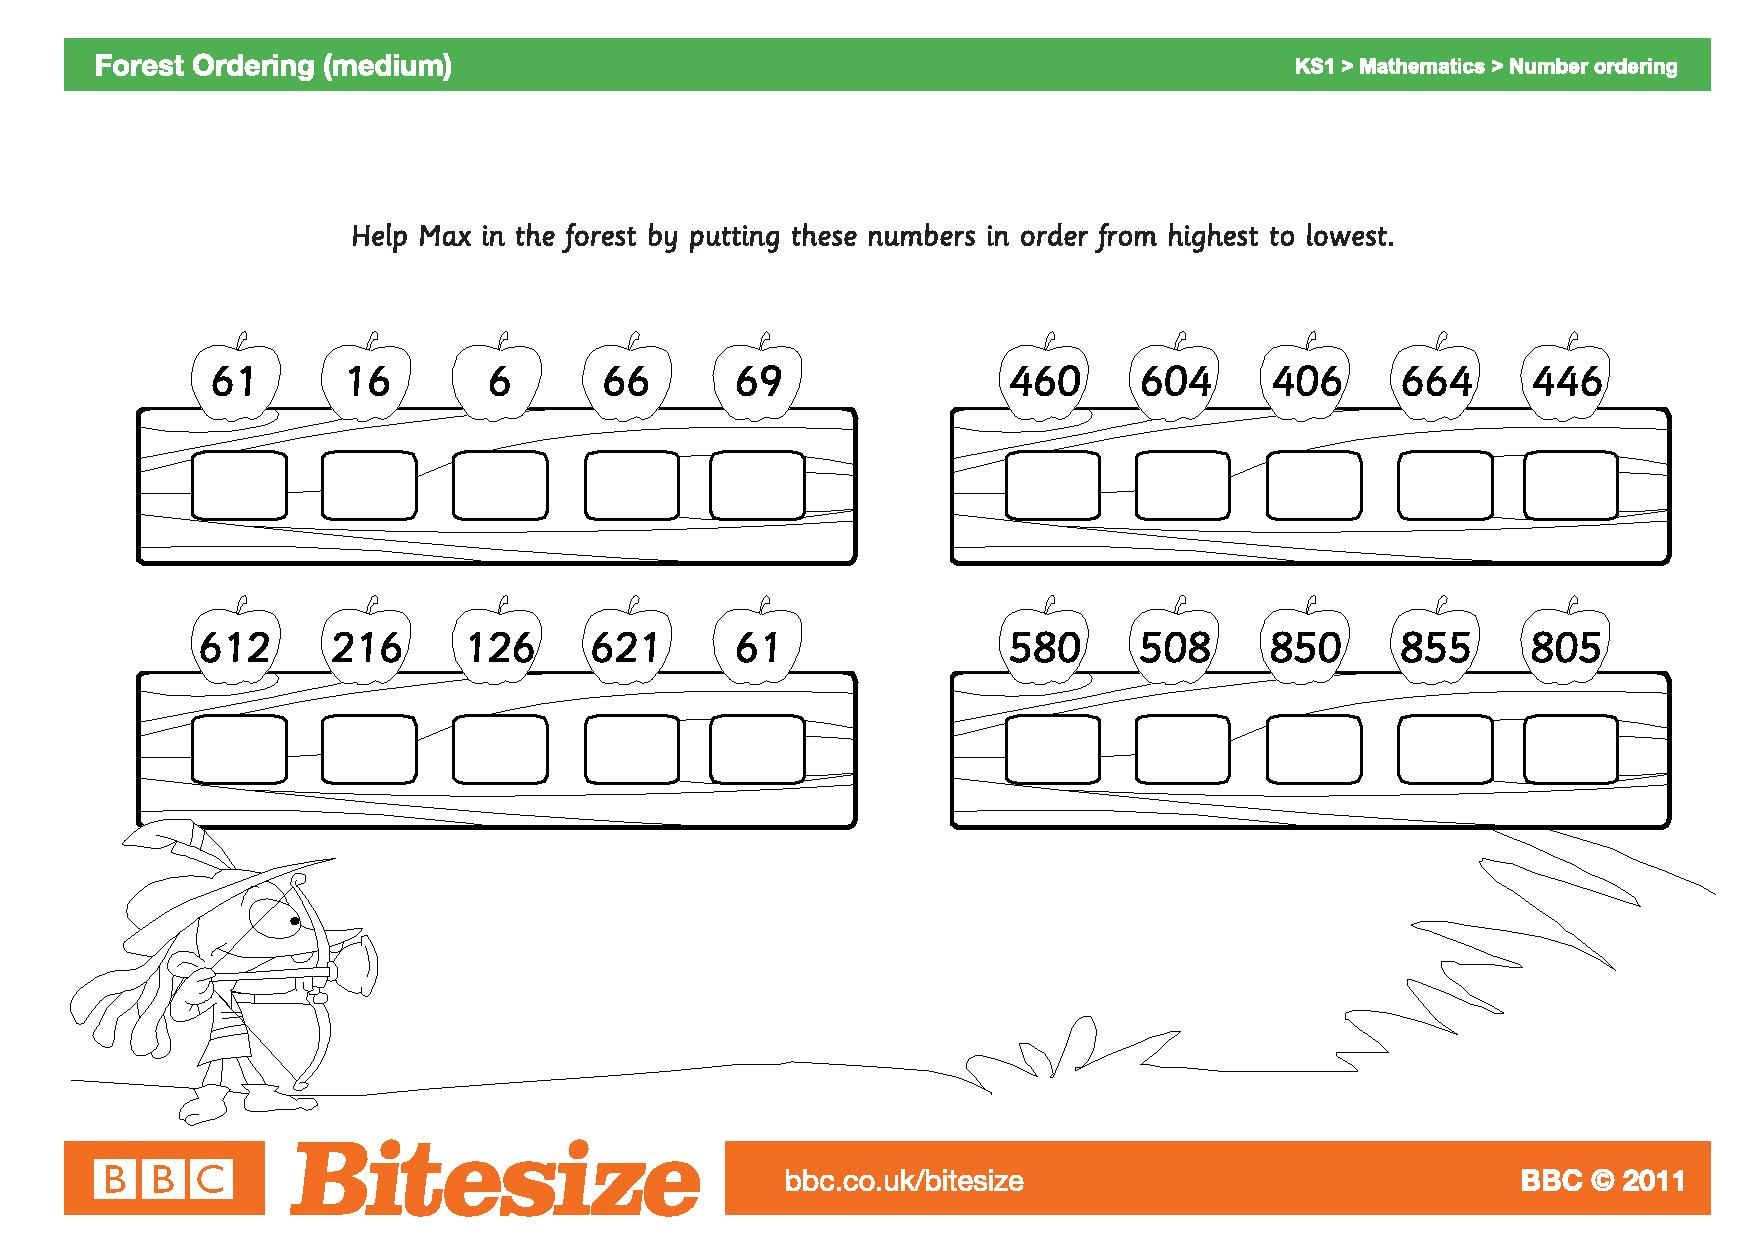 Worksheet Forest Ordering Medium Page 001